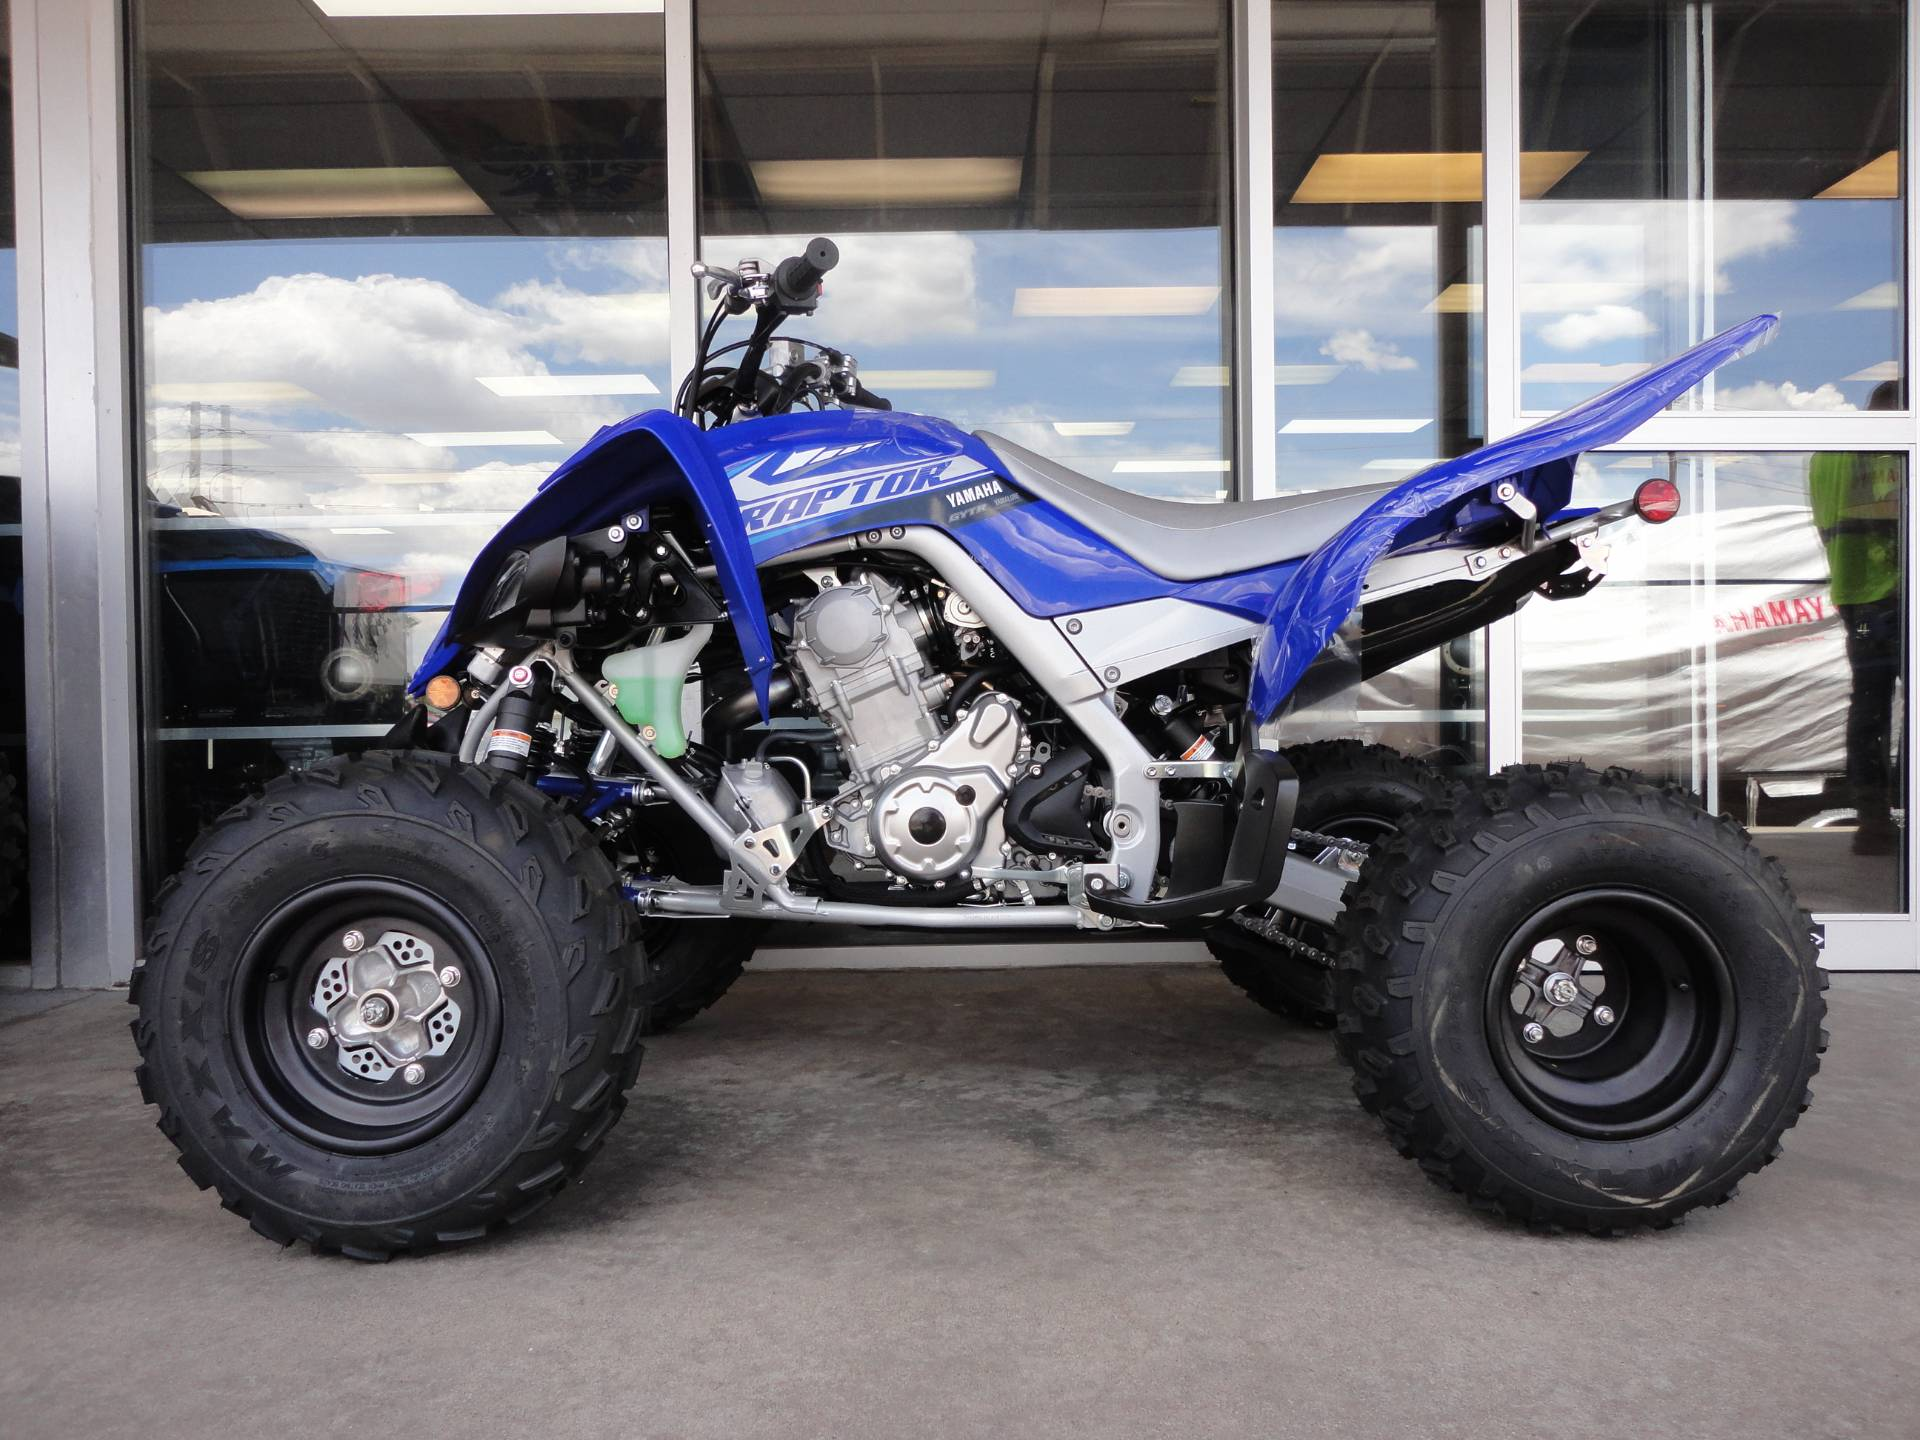 2020 Yamaha Raptor 700R in Denver, Colorado - Photo 2